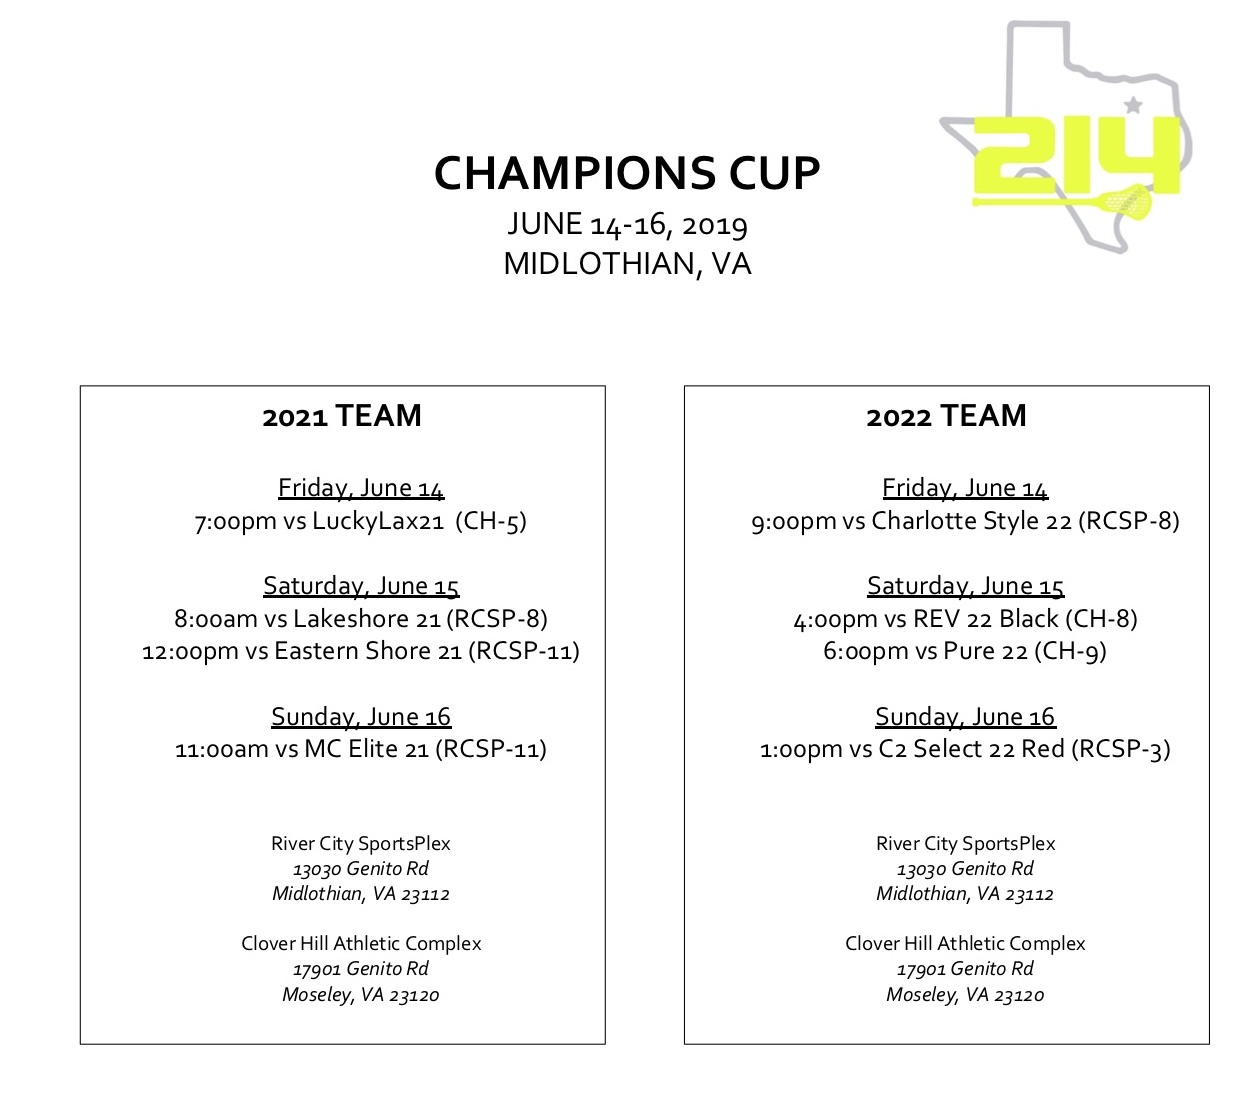 214LC Champions Cup SCHEDULE 2019.jpg